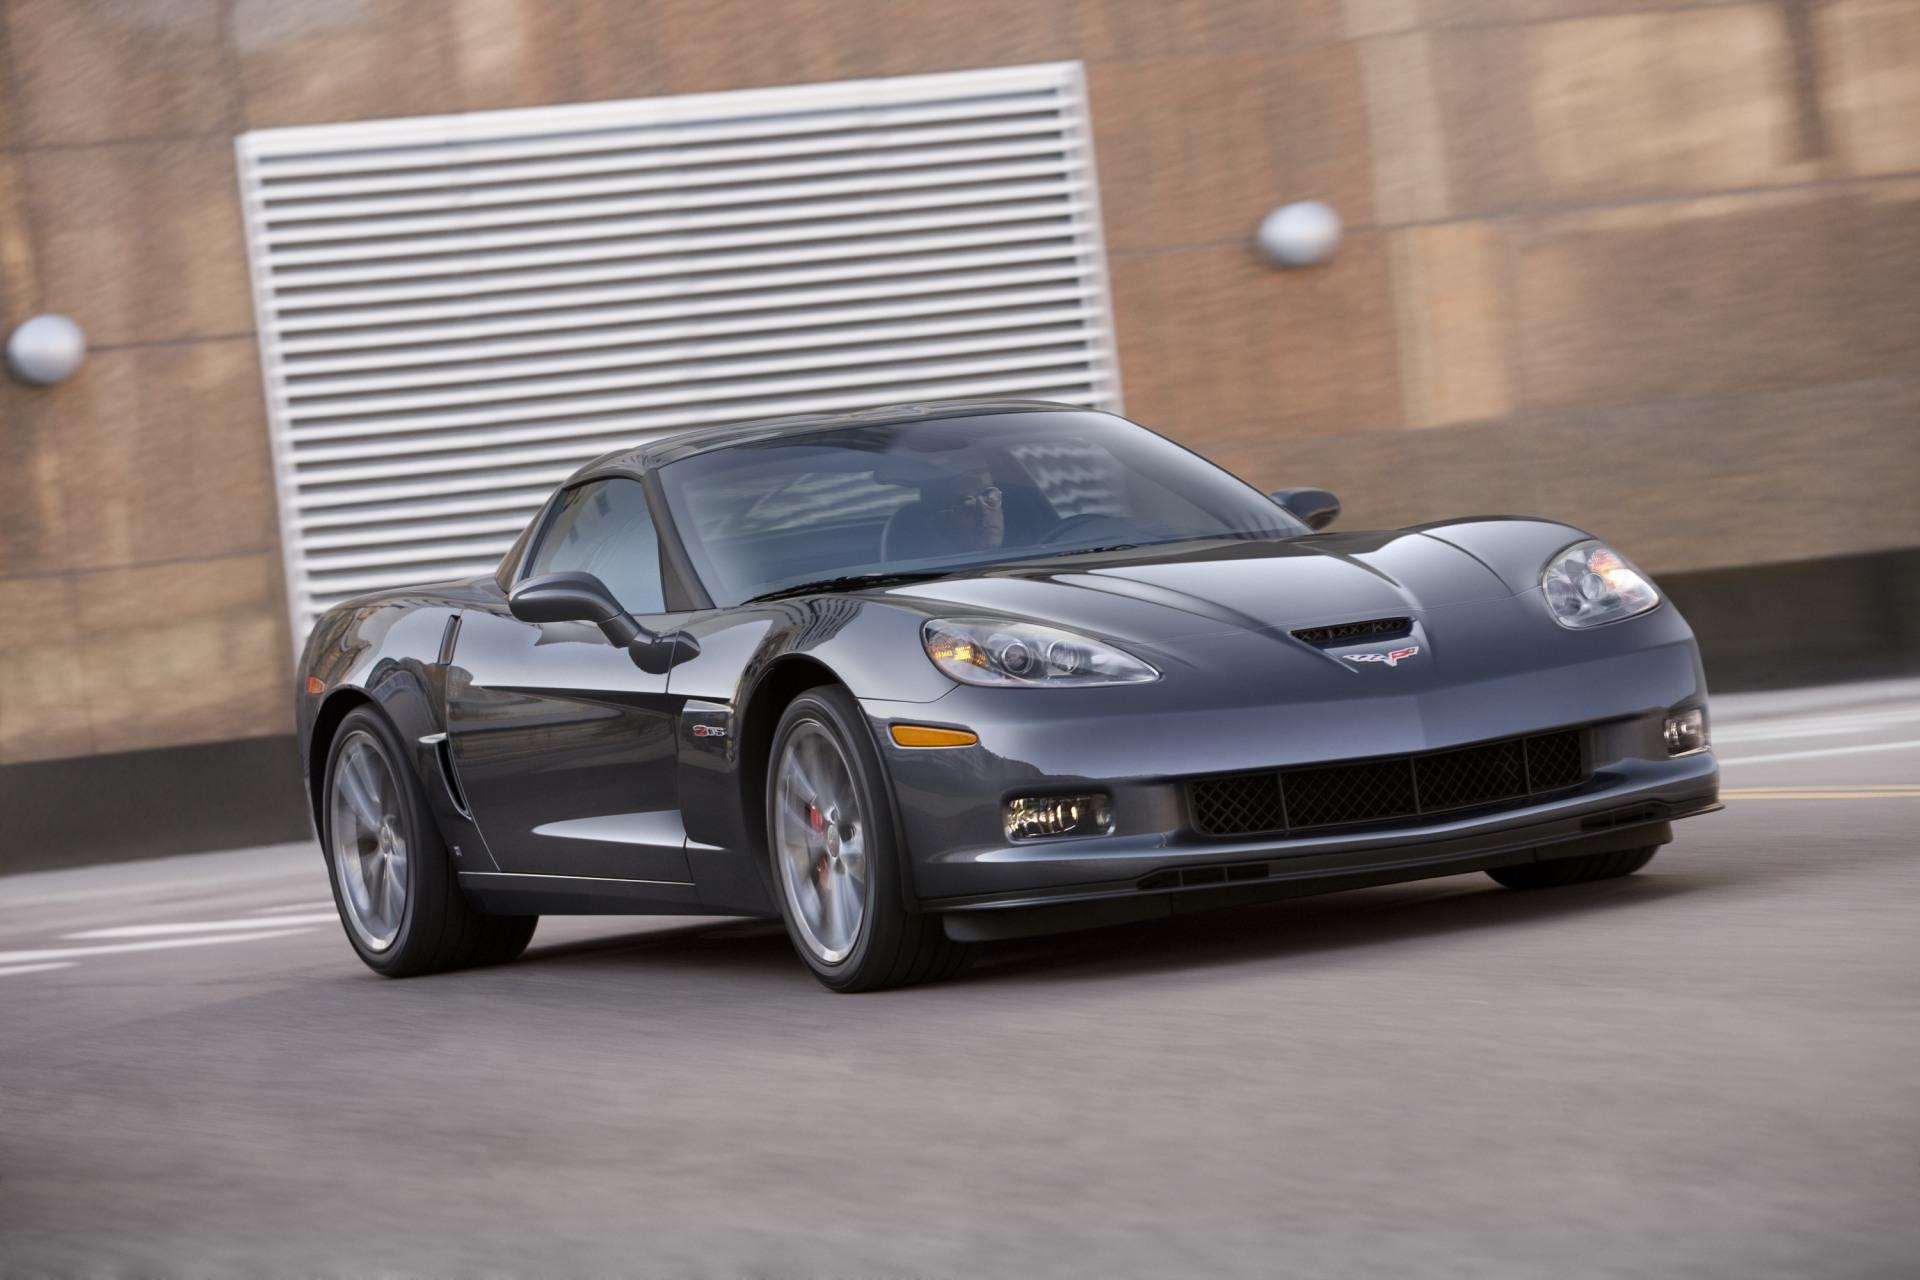 2011 Chevrolet Corvette Z06 News and Information